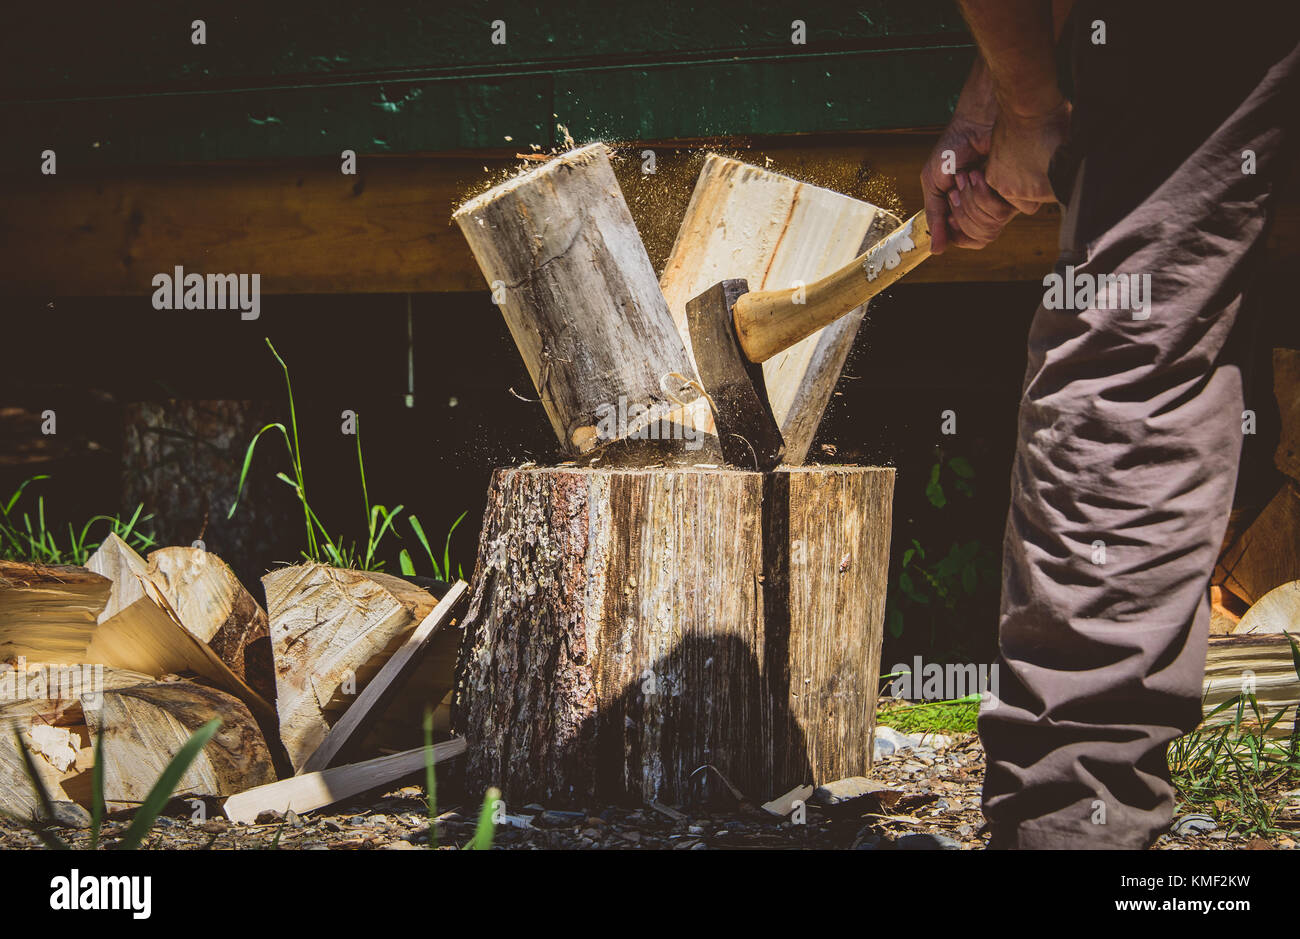 Splitting wood with an axe outdoors in the summer - Stock Image